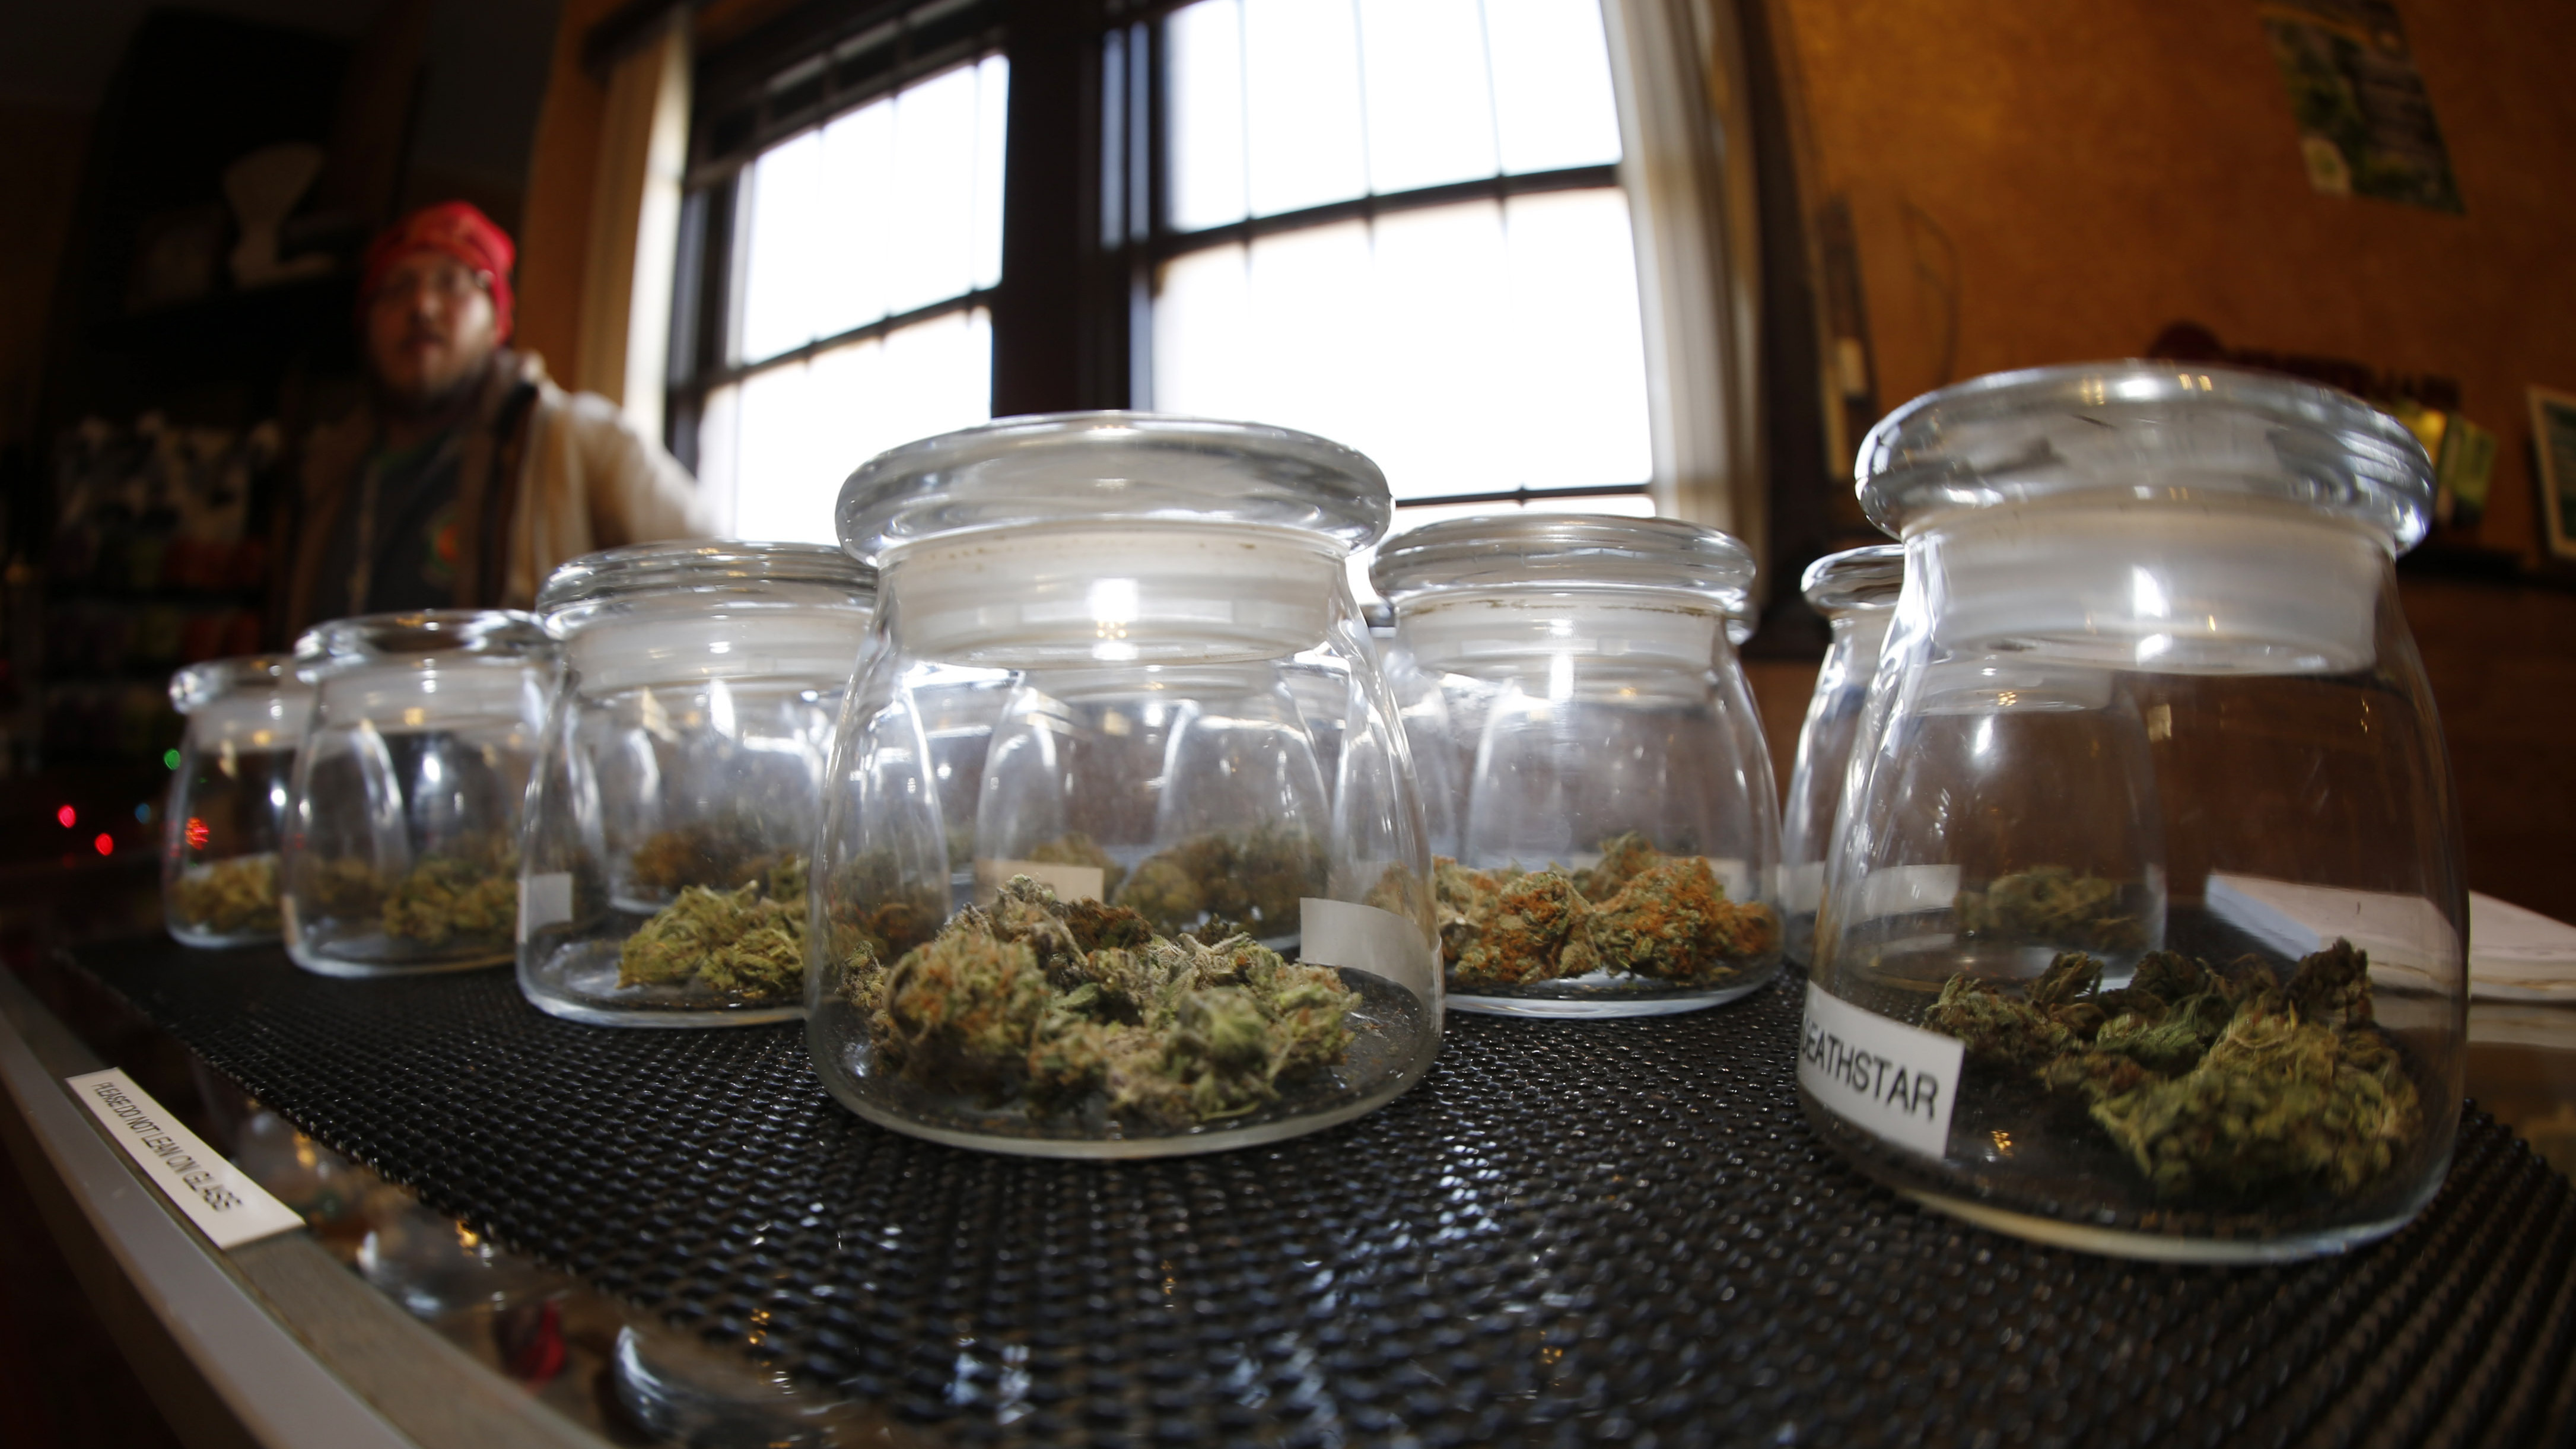 When Pot Goes From Illegal To Recreational, Schools Face A Dilemma